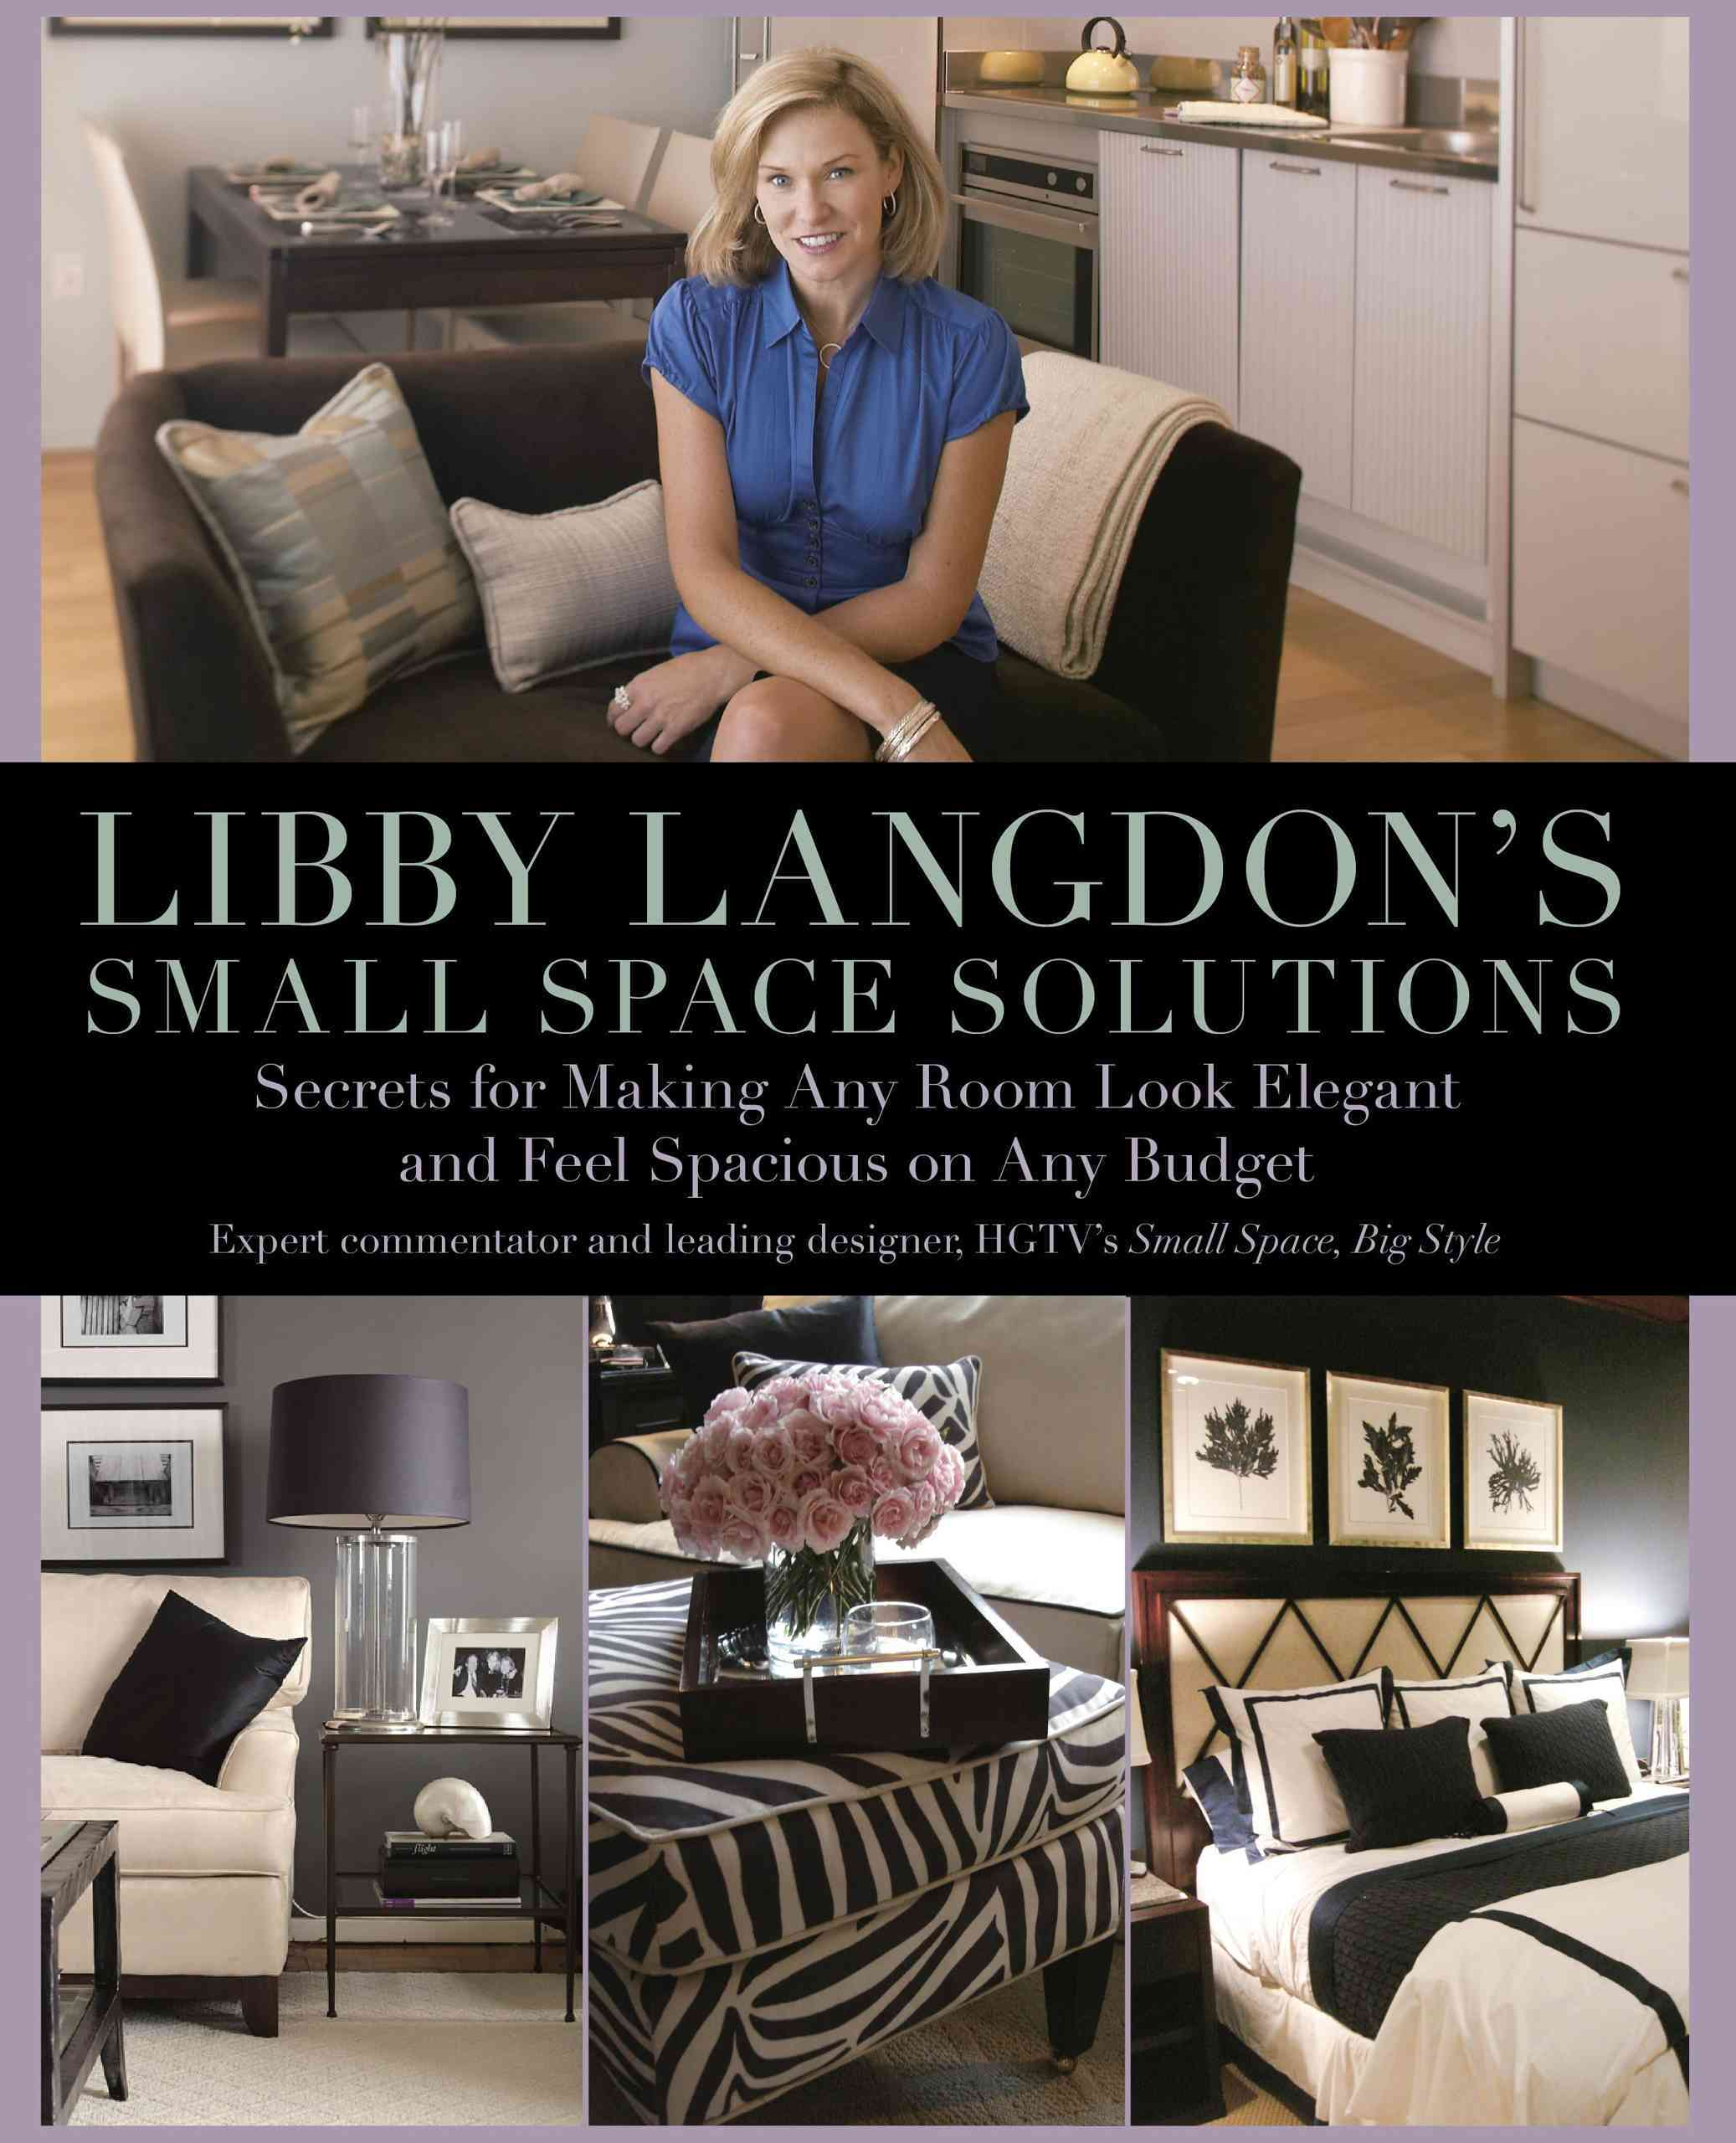 Libby Langdon's Small Space Solutions: Secrets for Making Any Room Look Elegant and Feel Spacious on Any Budget (Paperback)